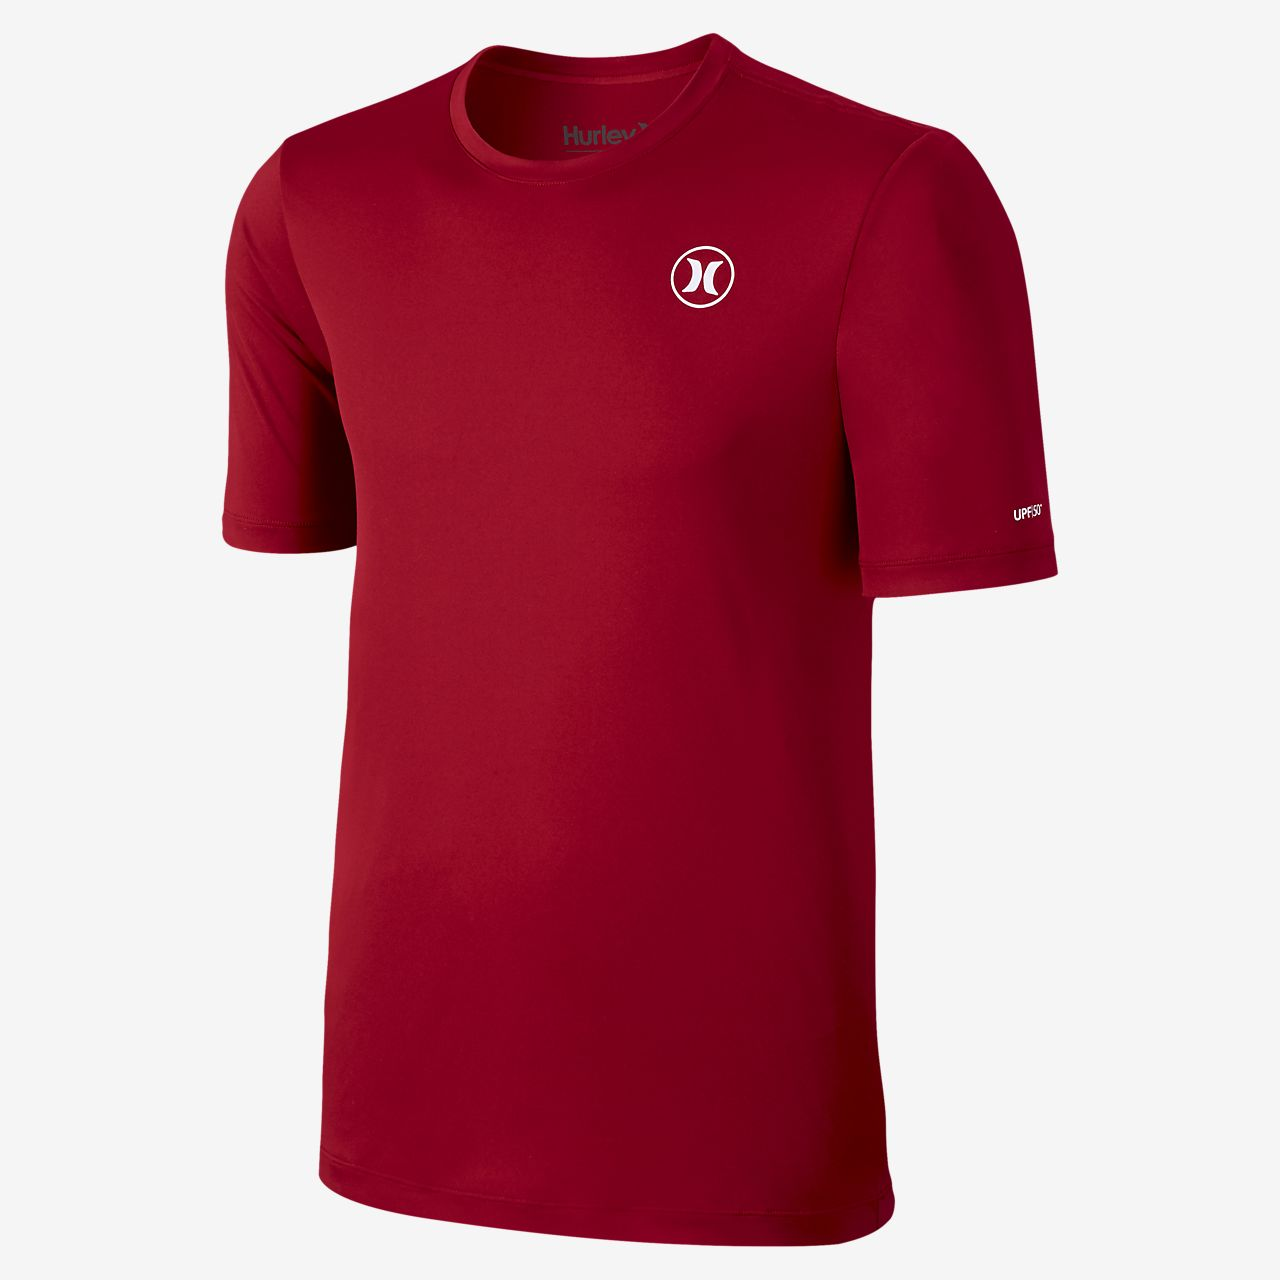 Nike Hurley Dri-FIT Icon Surf Shirt Mens Gym Red